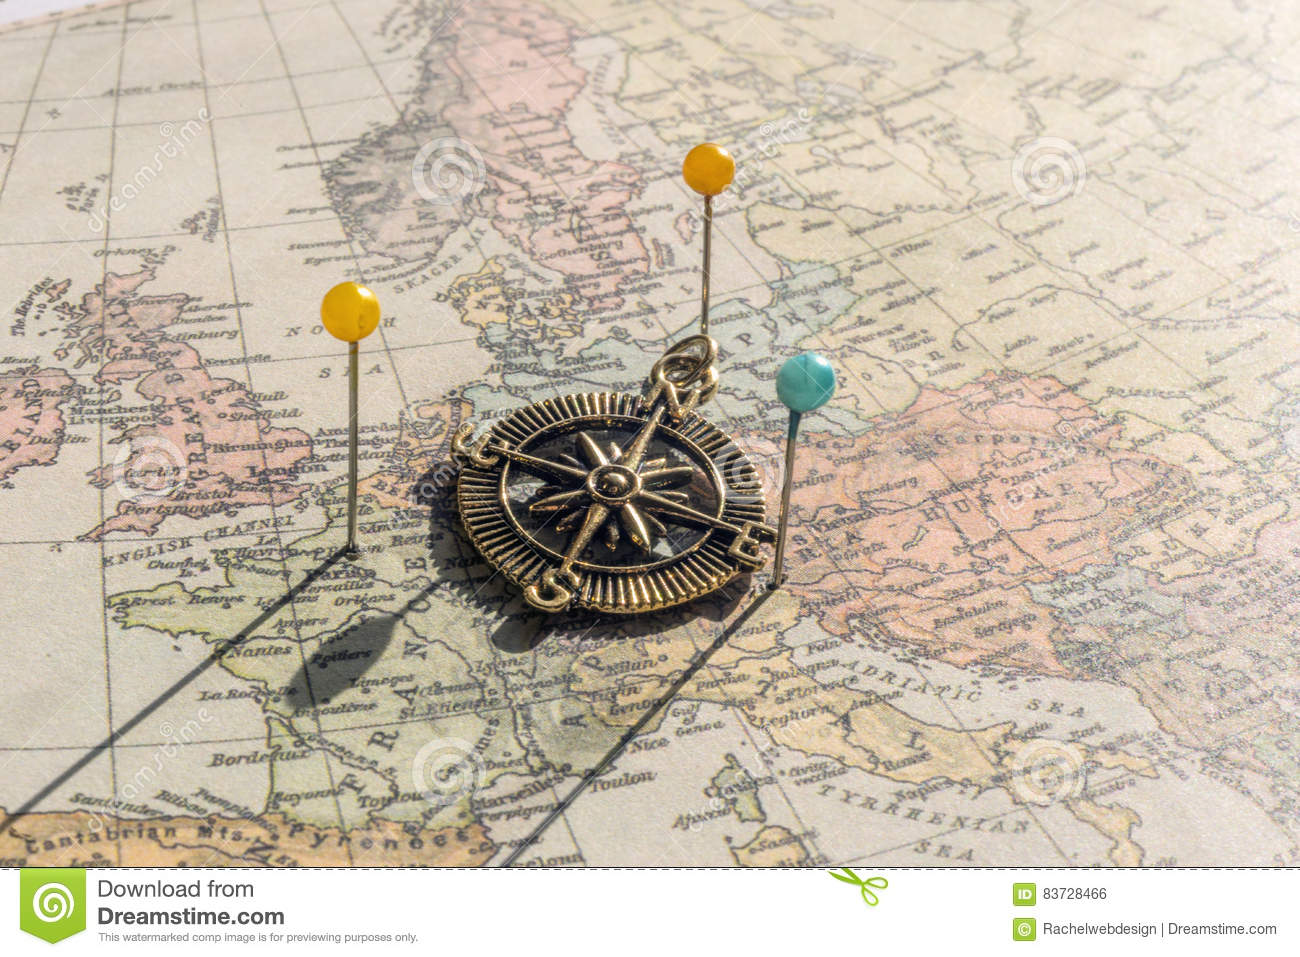 Pins and vintage compass on an old world map stock photo image of download comp gumiabroncs Image collections